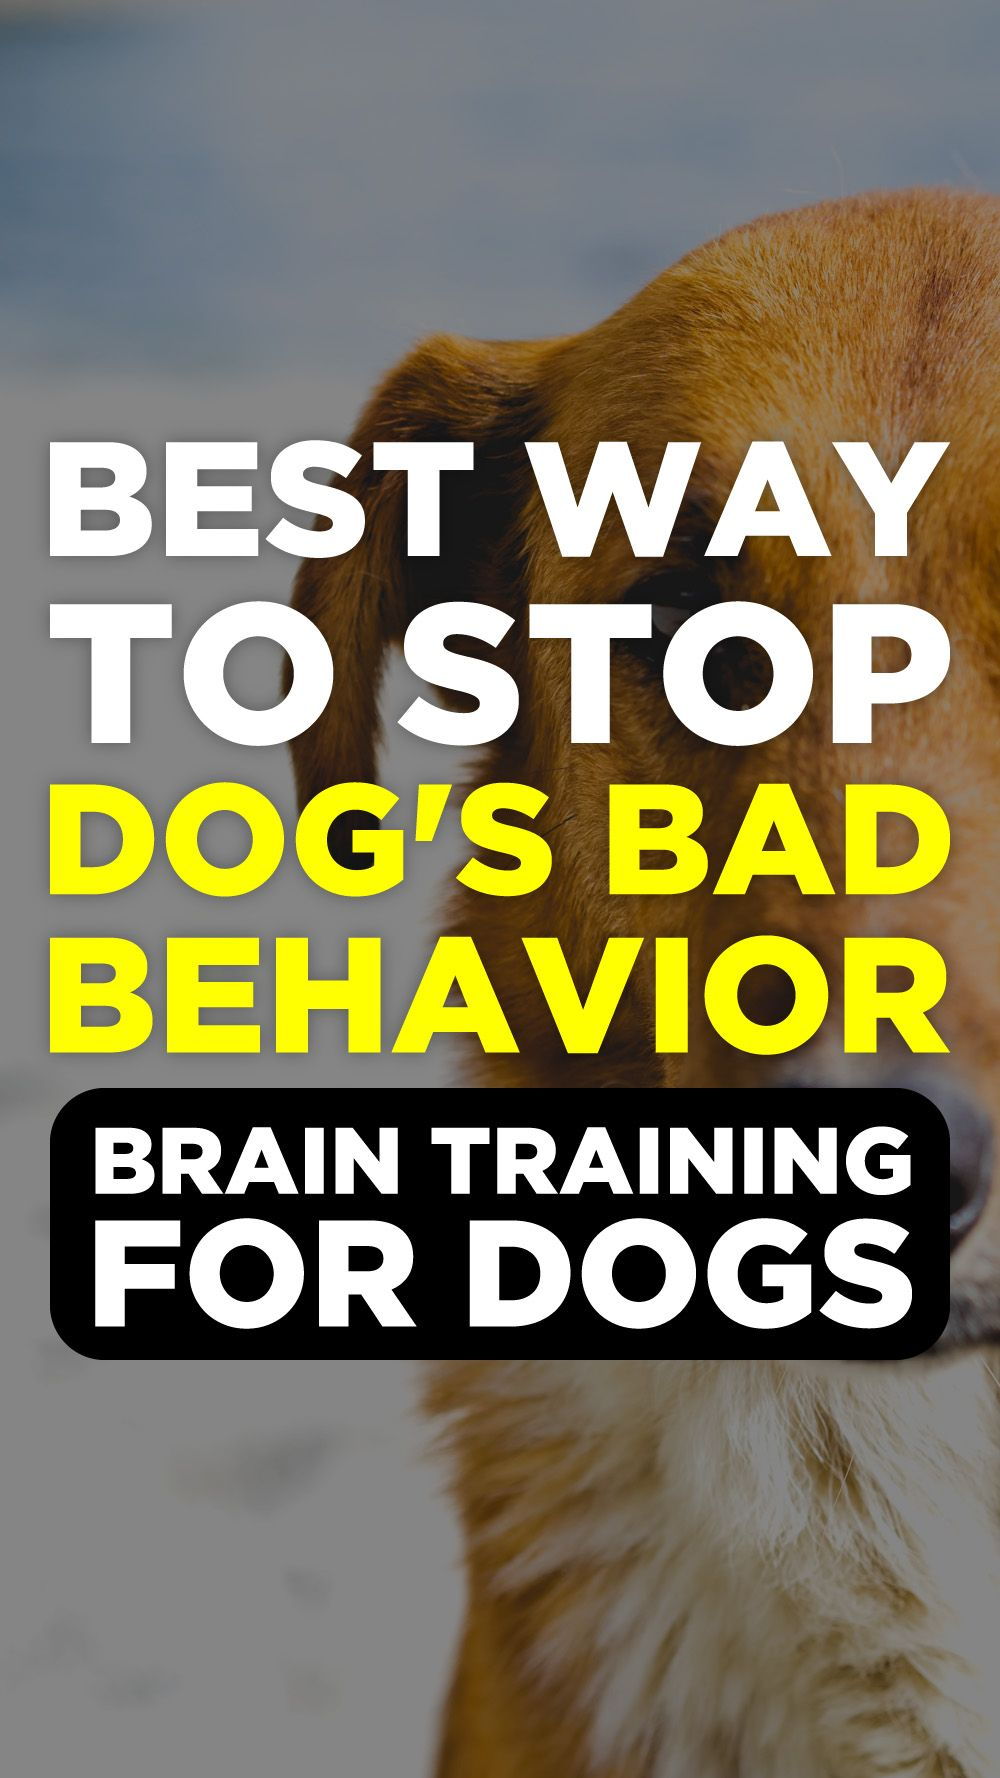 Brain training for dogs review emotional support dog